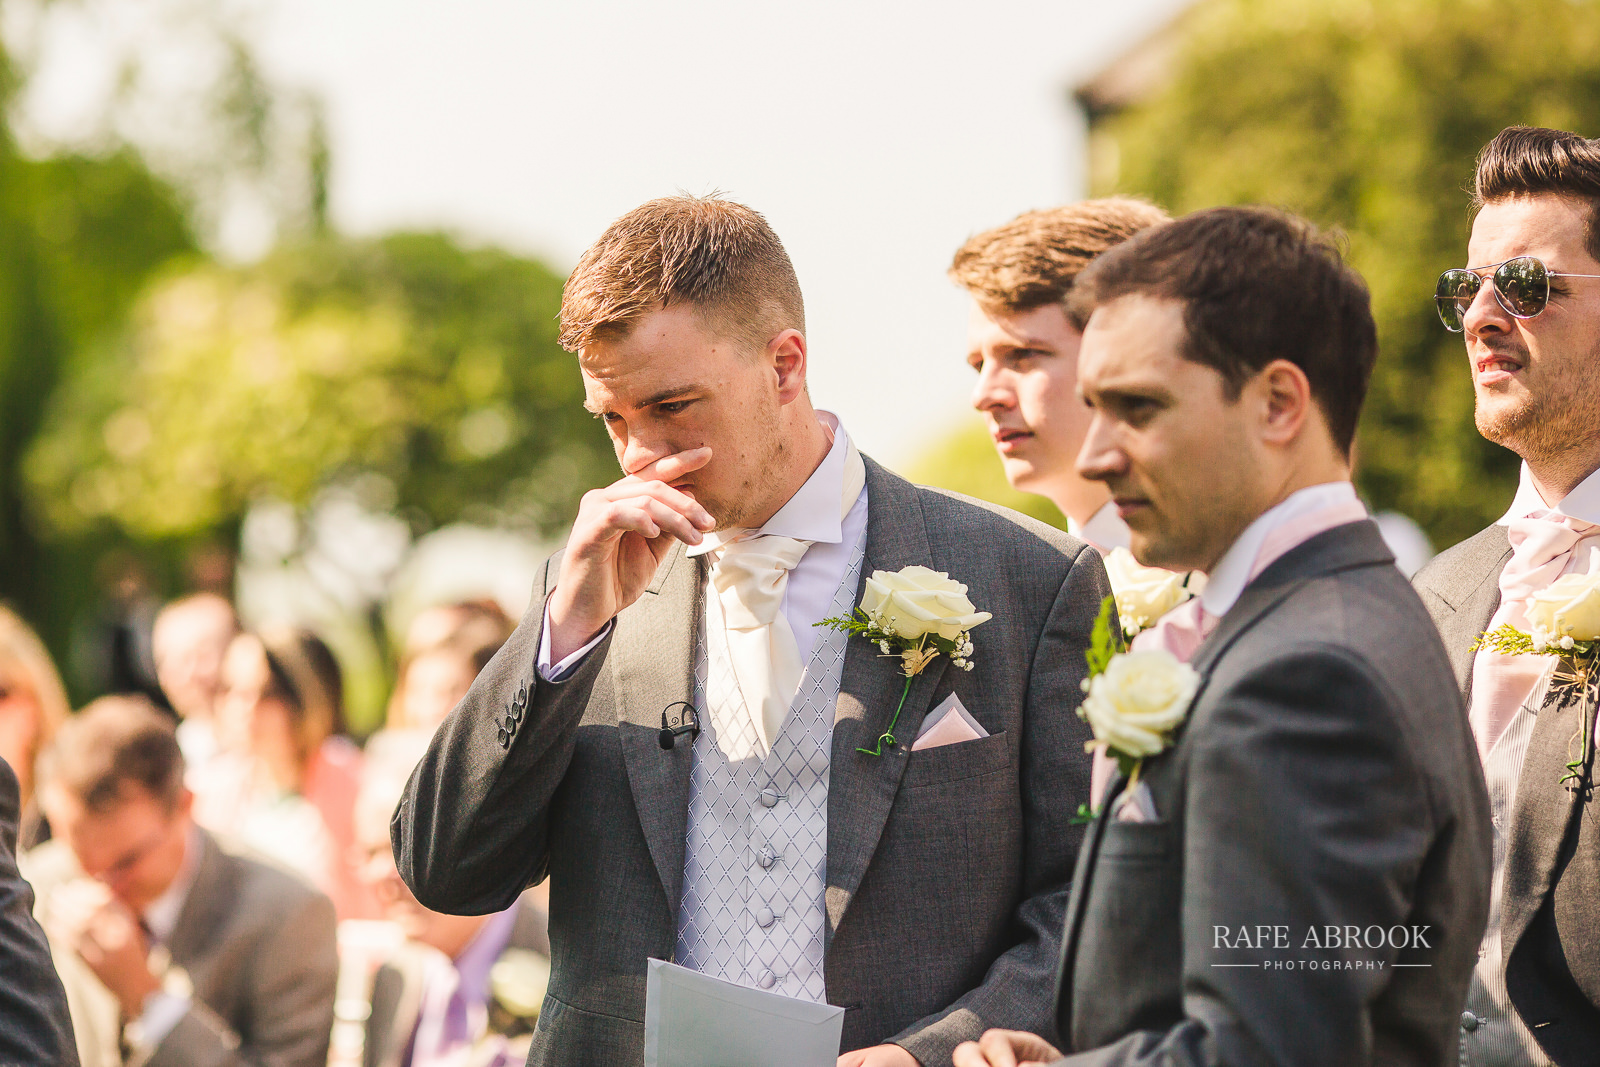 south farm wedding royston hertfordshire wedding photographer rafe abrook photography-1447.jpg